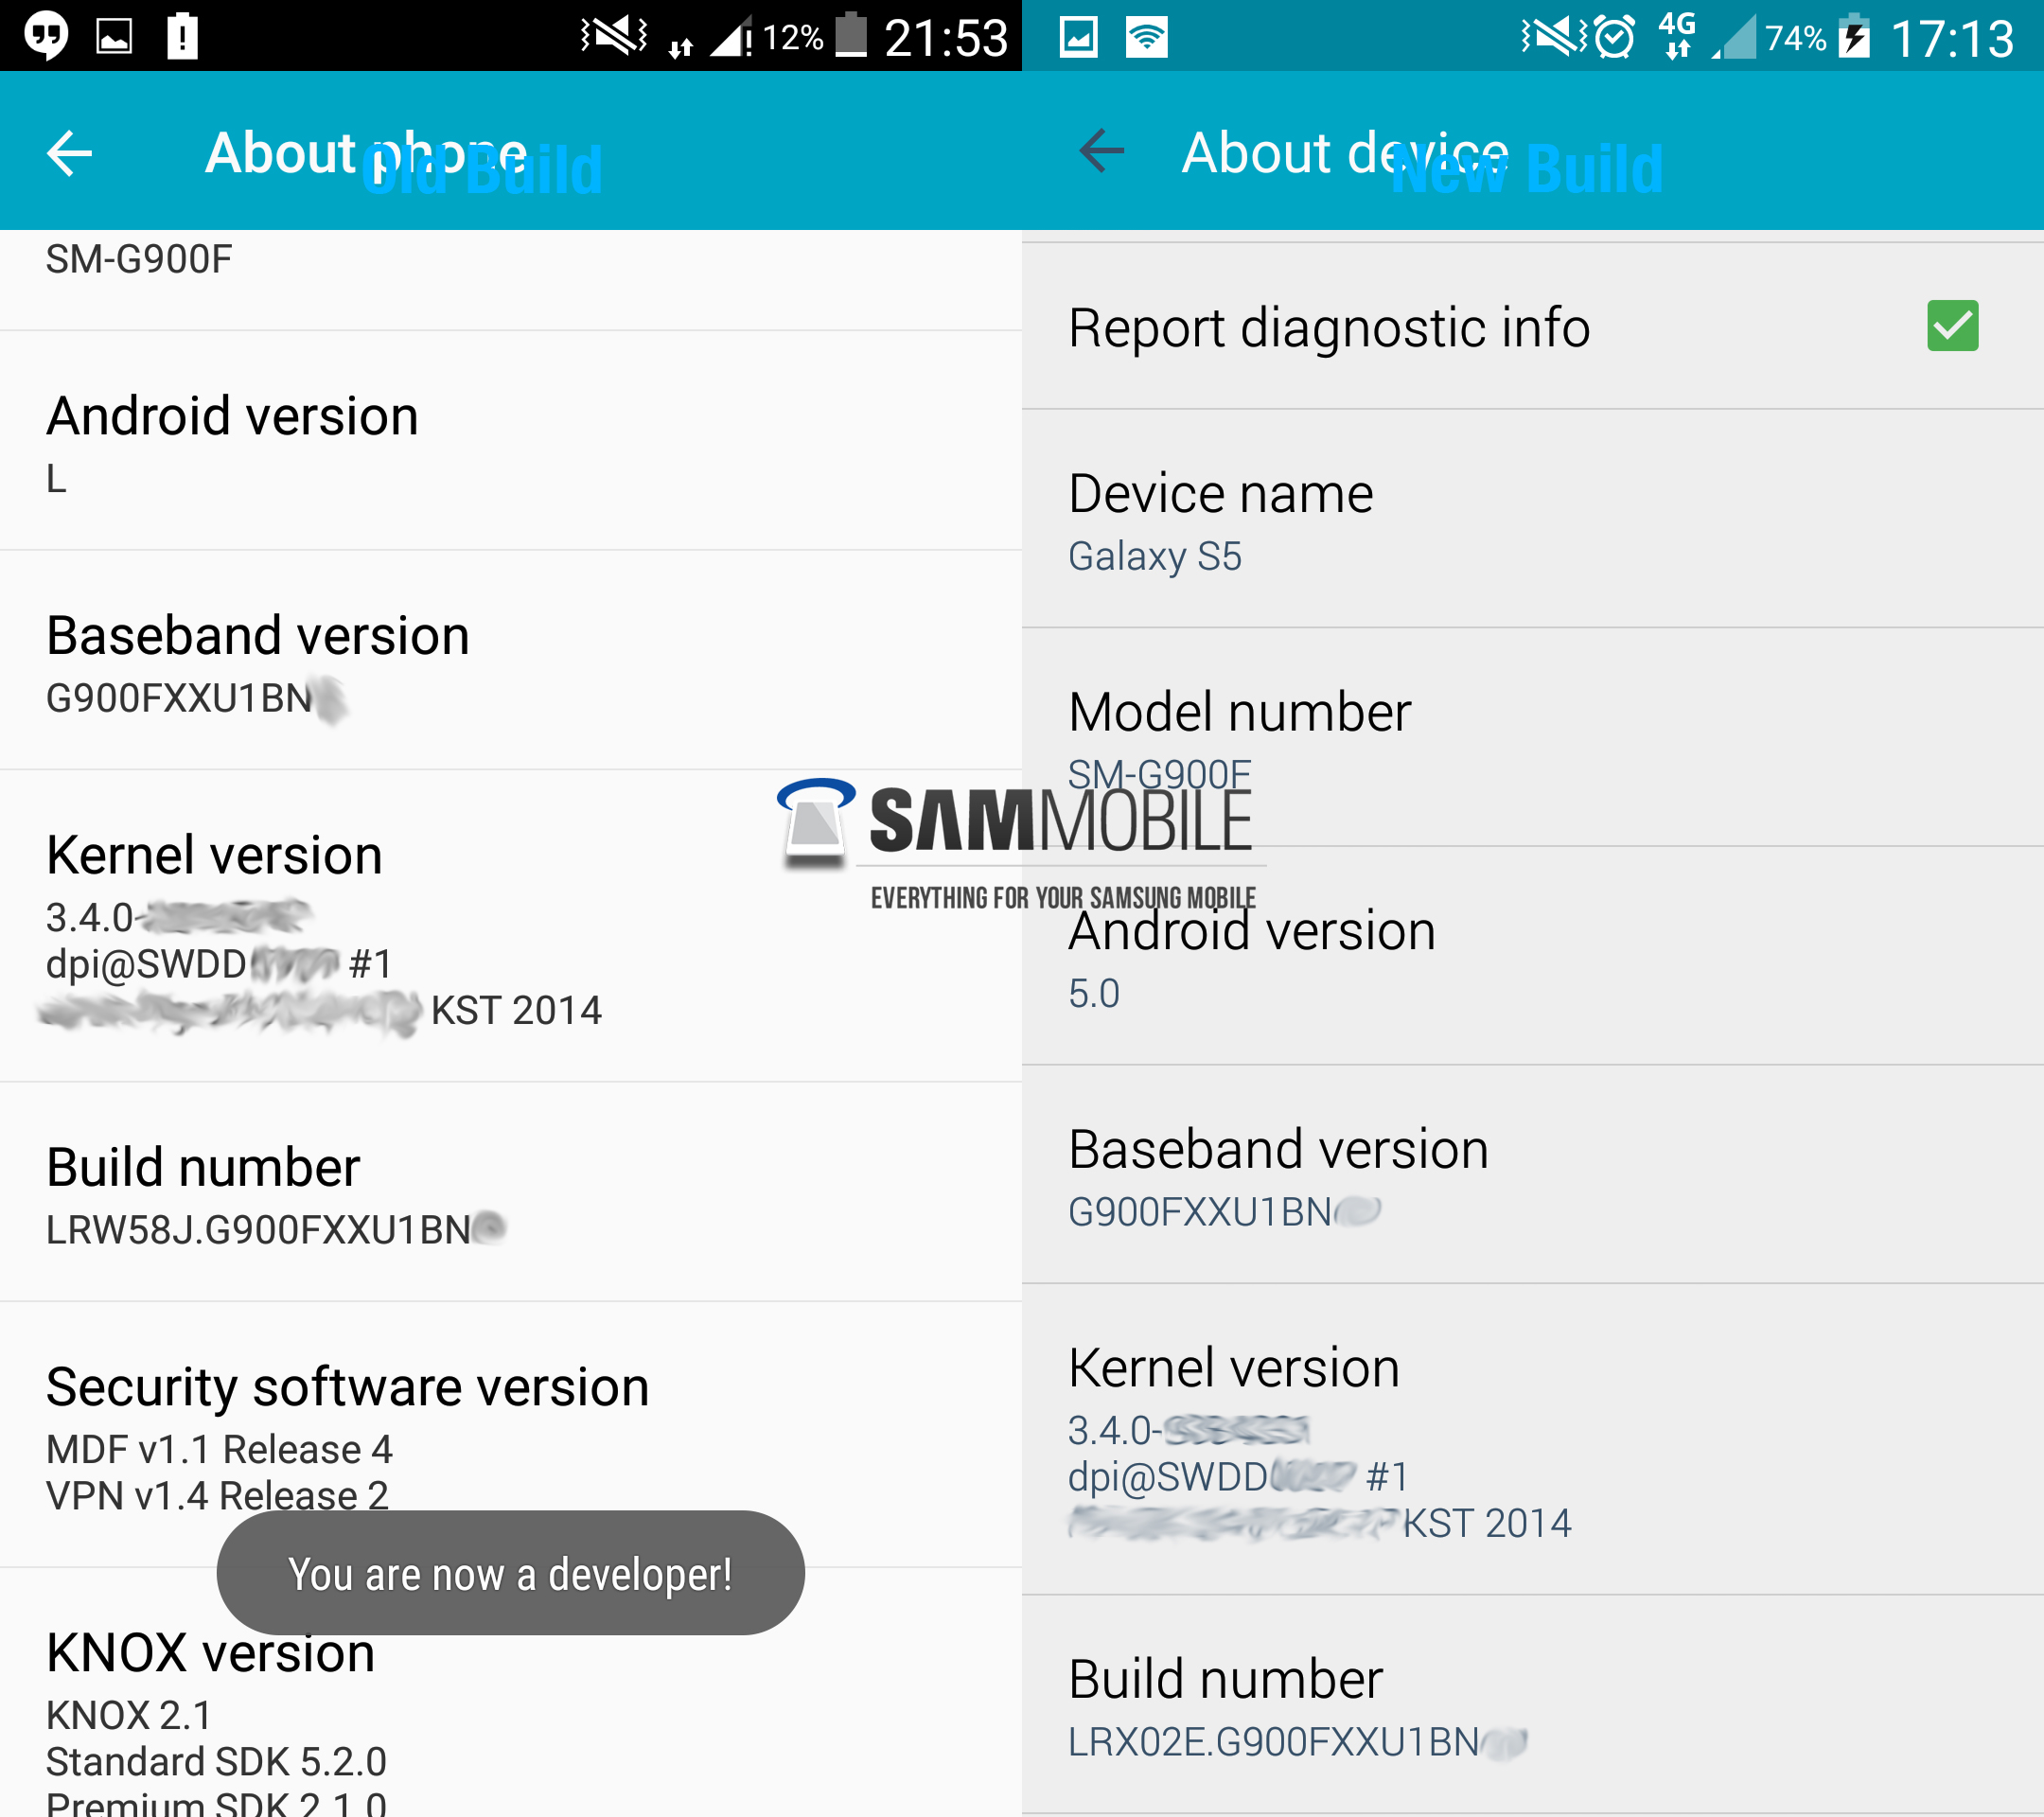 Samsung galaxy note 3 android 5 0 lollipop update leaks - Here S What Sammobile Noticed Was Changed From The Previous Leaked Lollipop Build